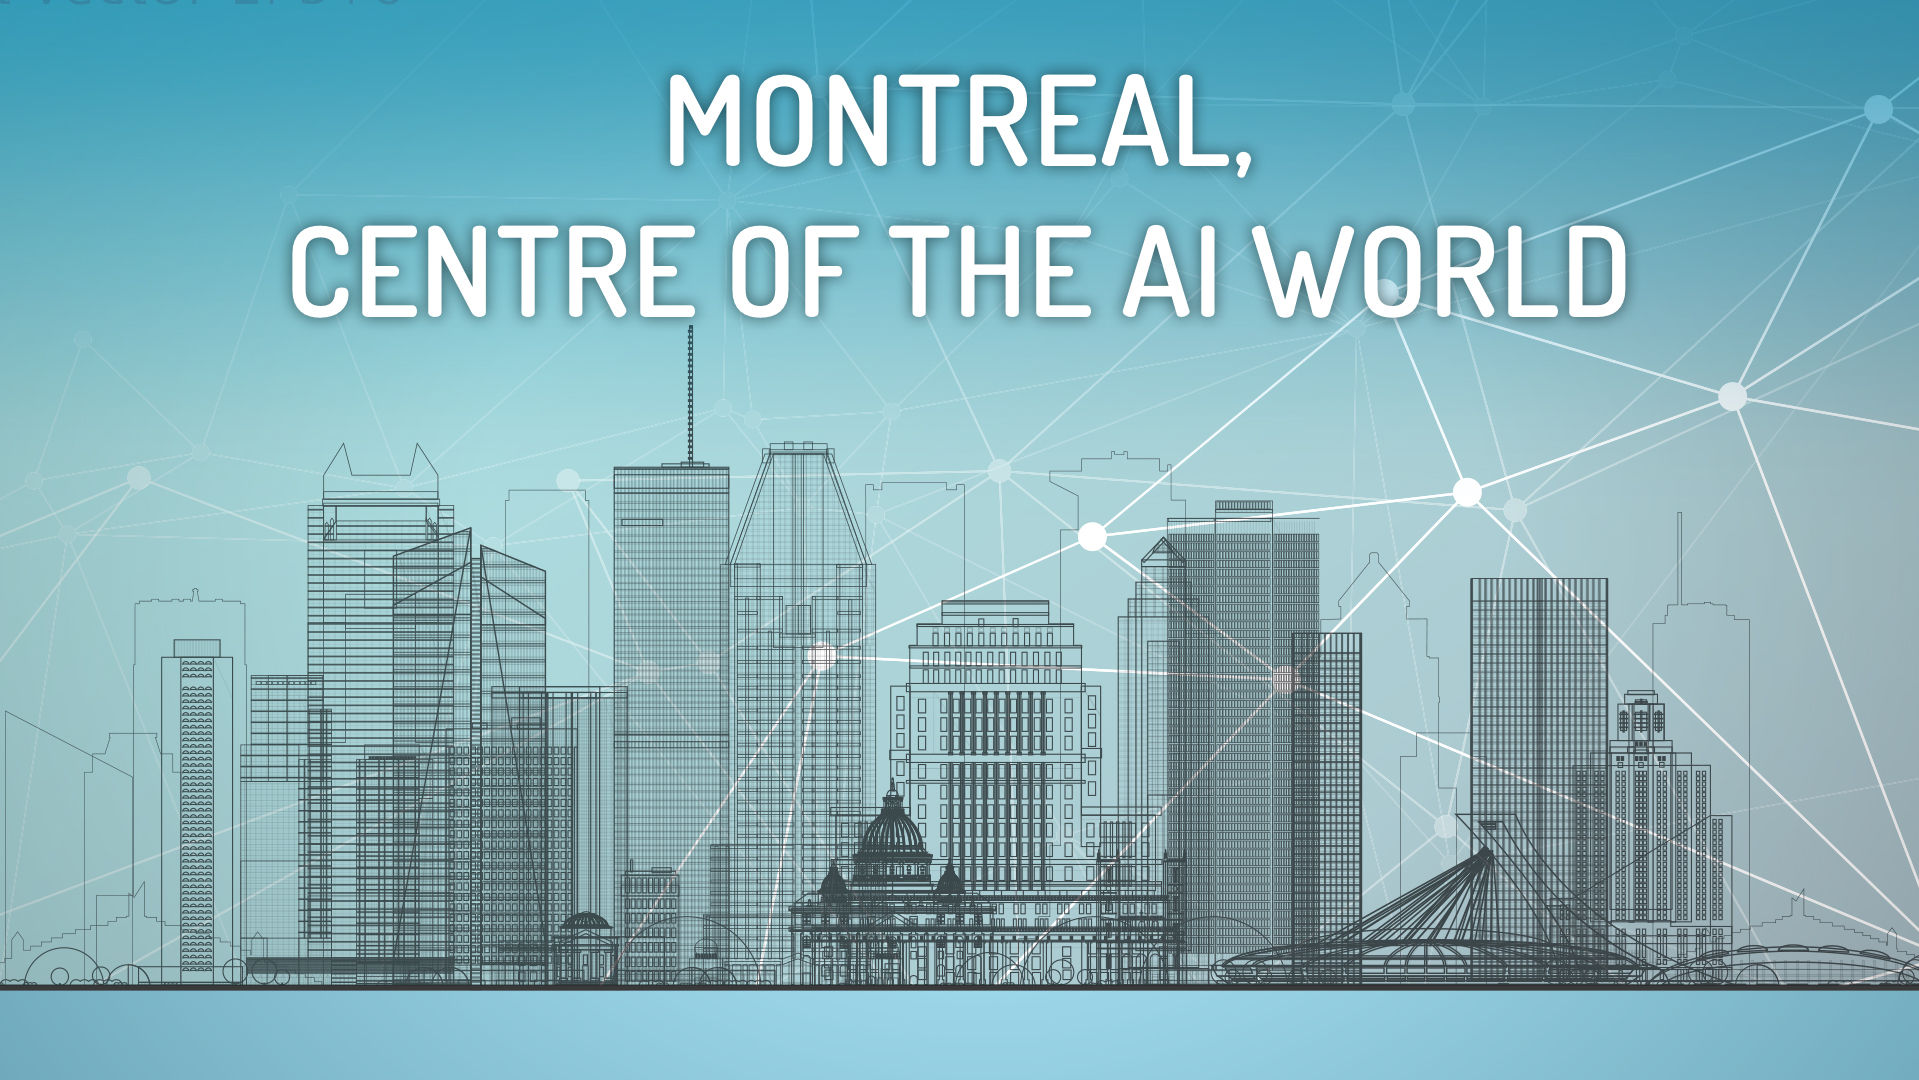 Montreal, Centre of the A.I. World